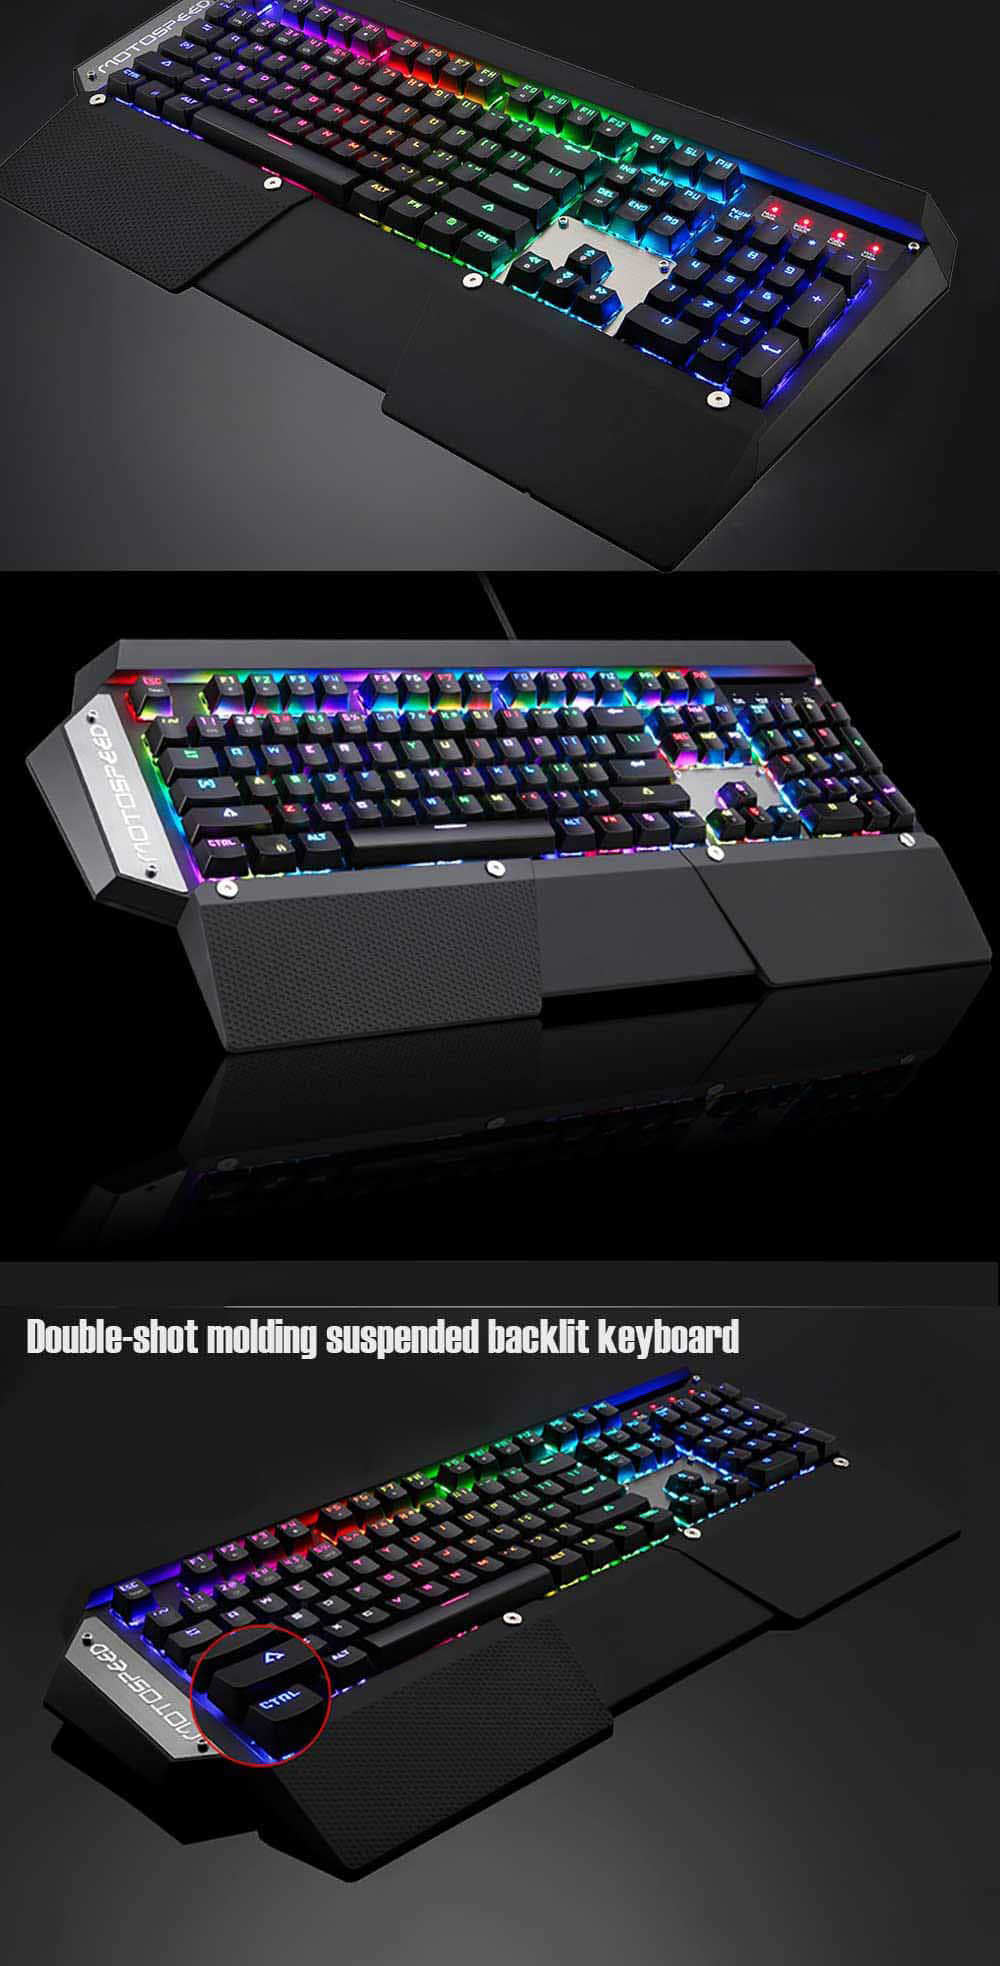 motospeed ck88 keyboard online